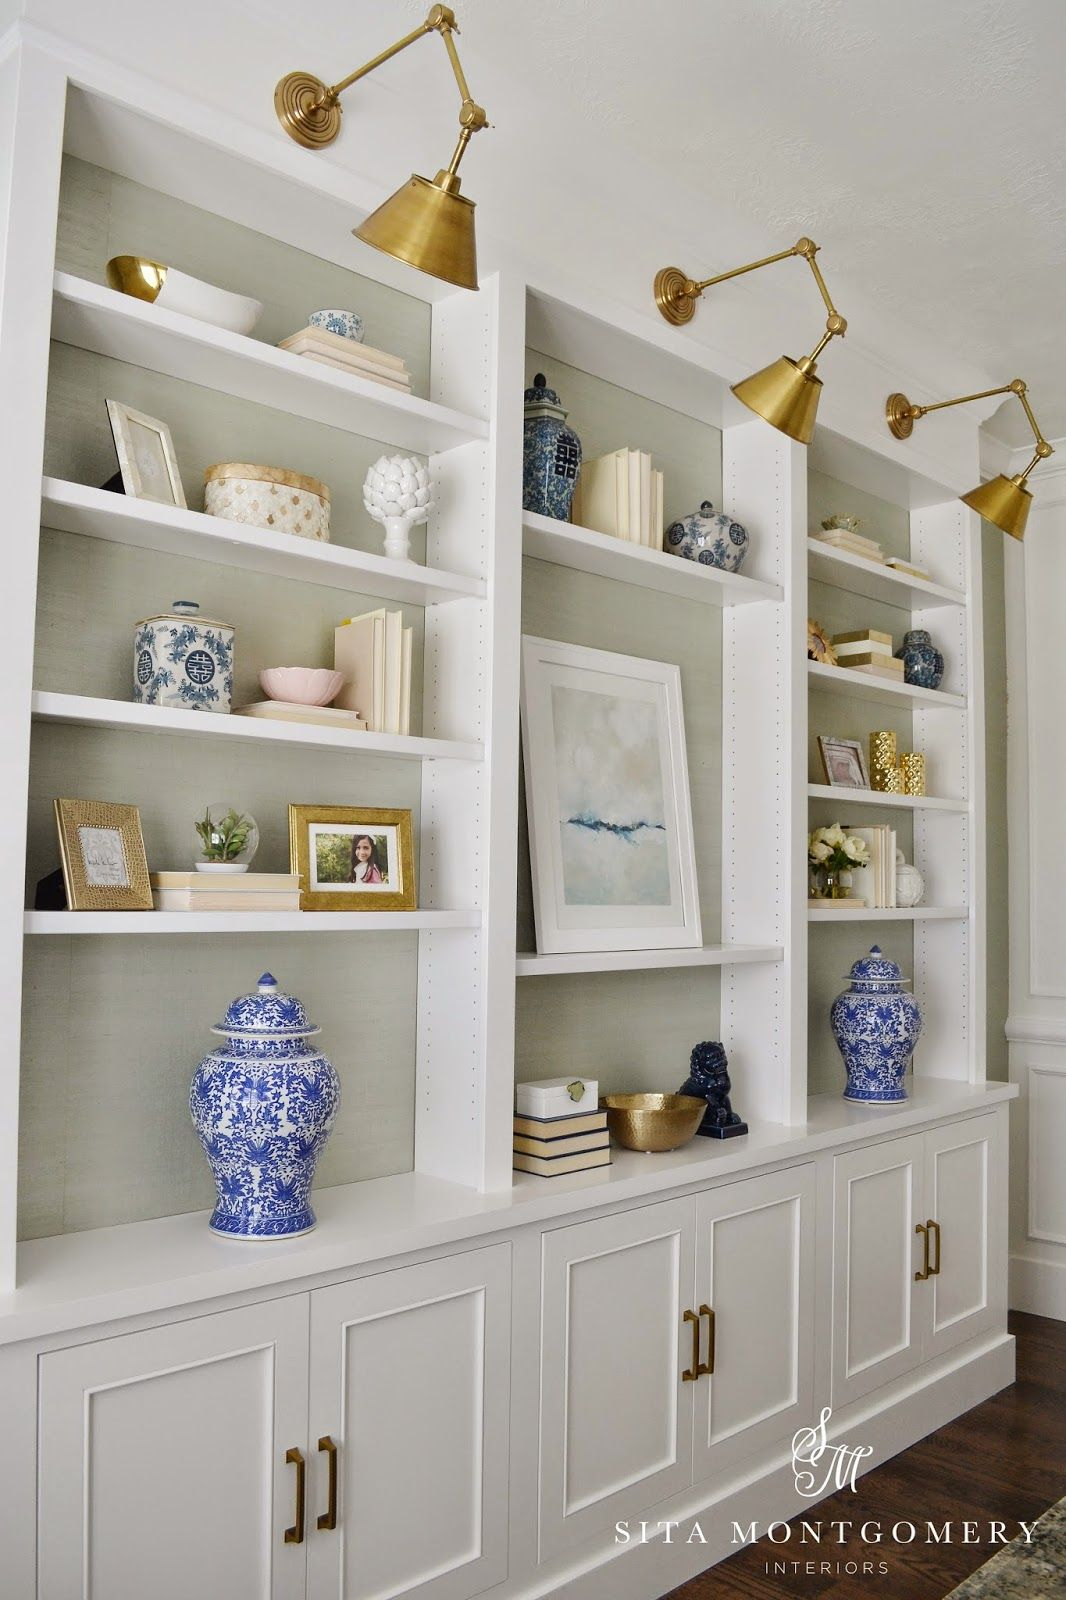 Built In Bookshelves With Deeper Lower Cabinet Sita Montgomery Interiors My Home Office Makeover Reveal